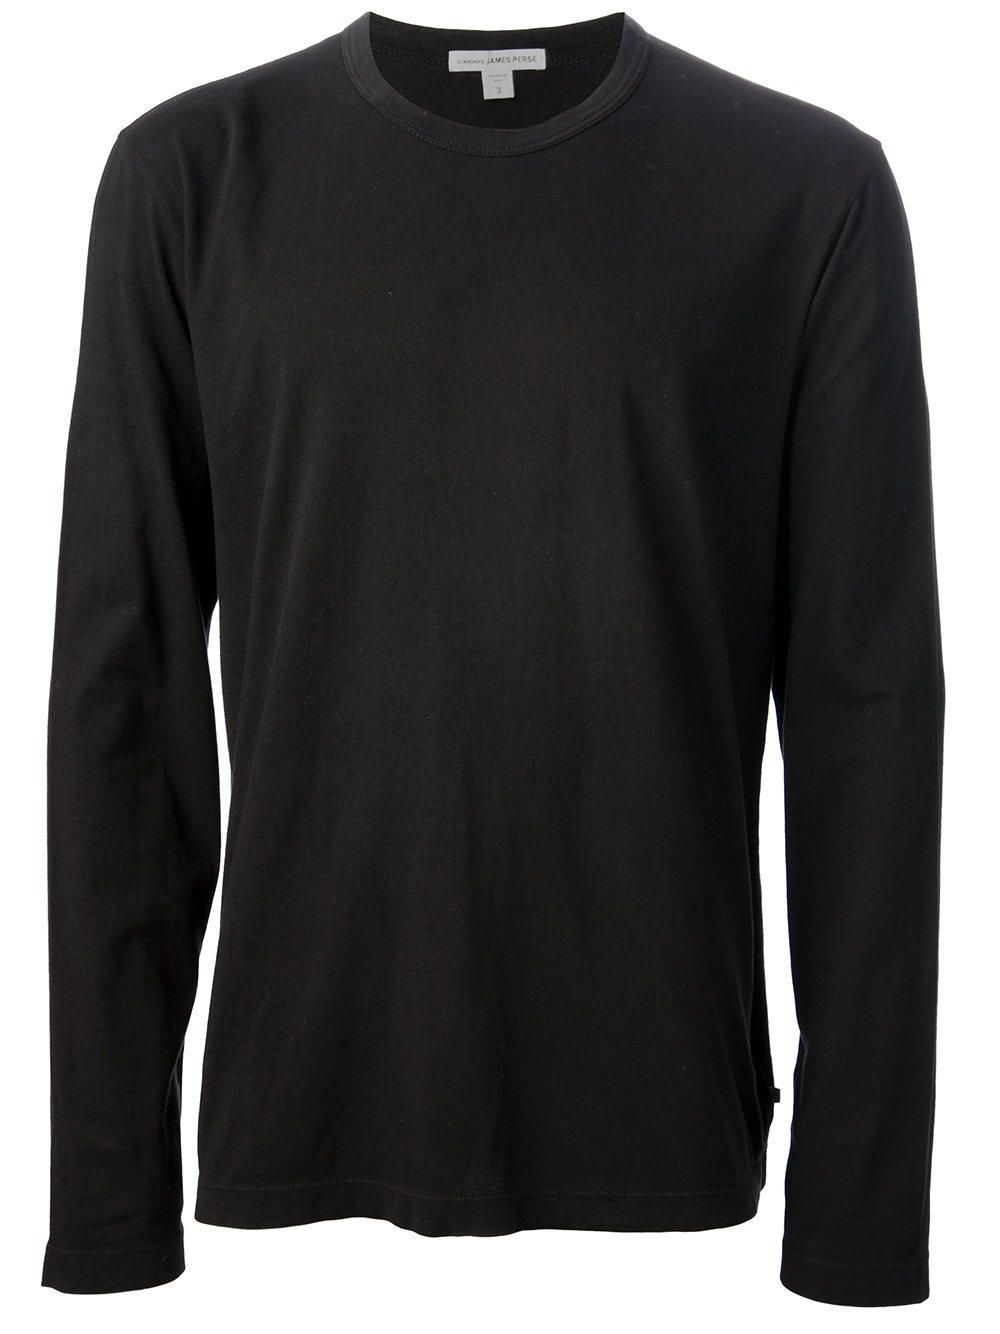 James perse long sleeve t shirt in black for men lyst for James perse t shirts sale